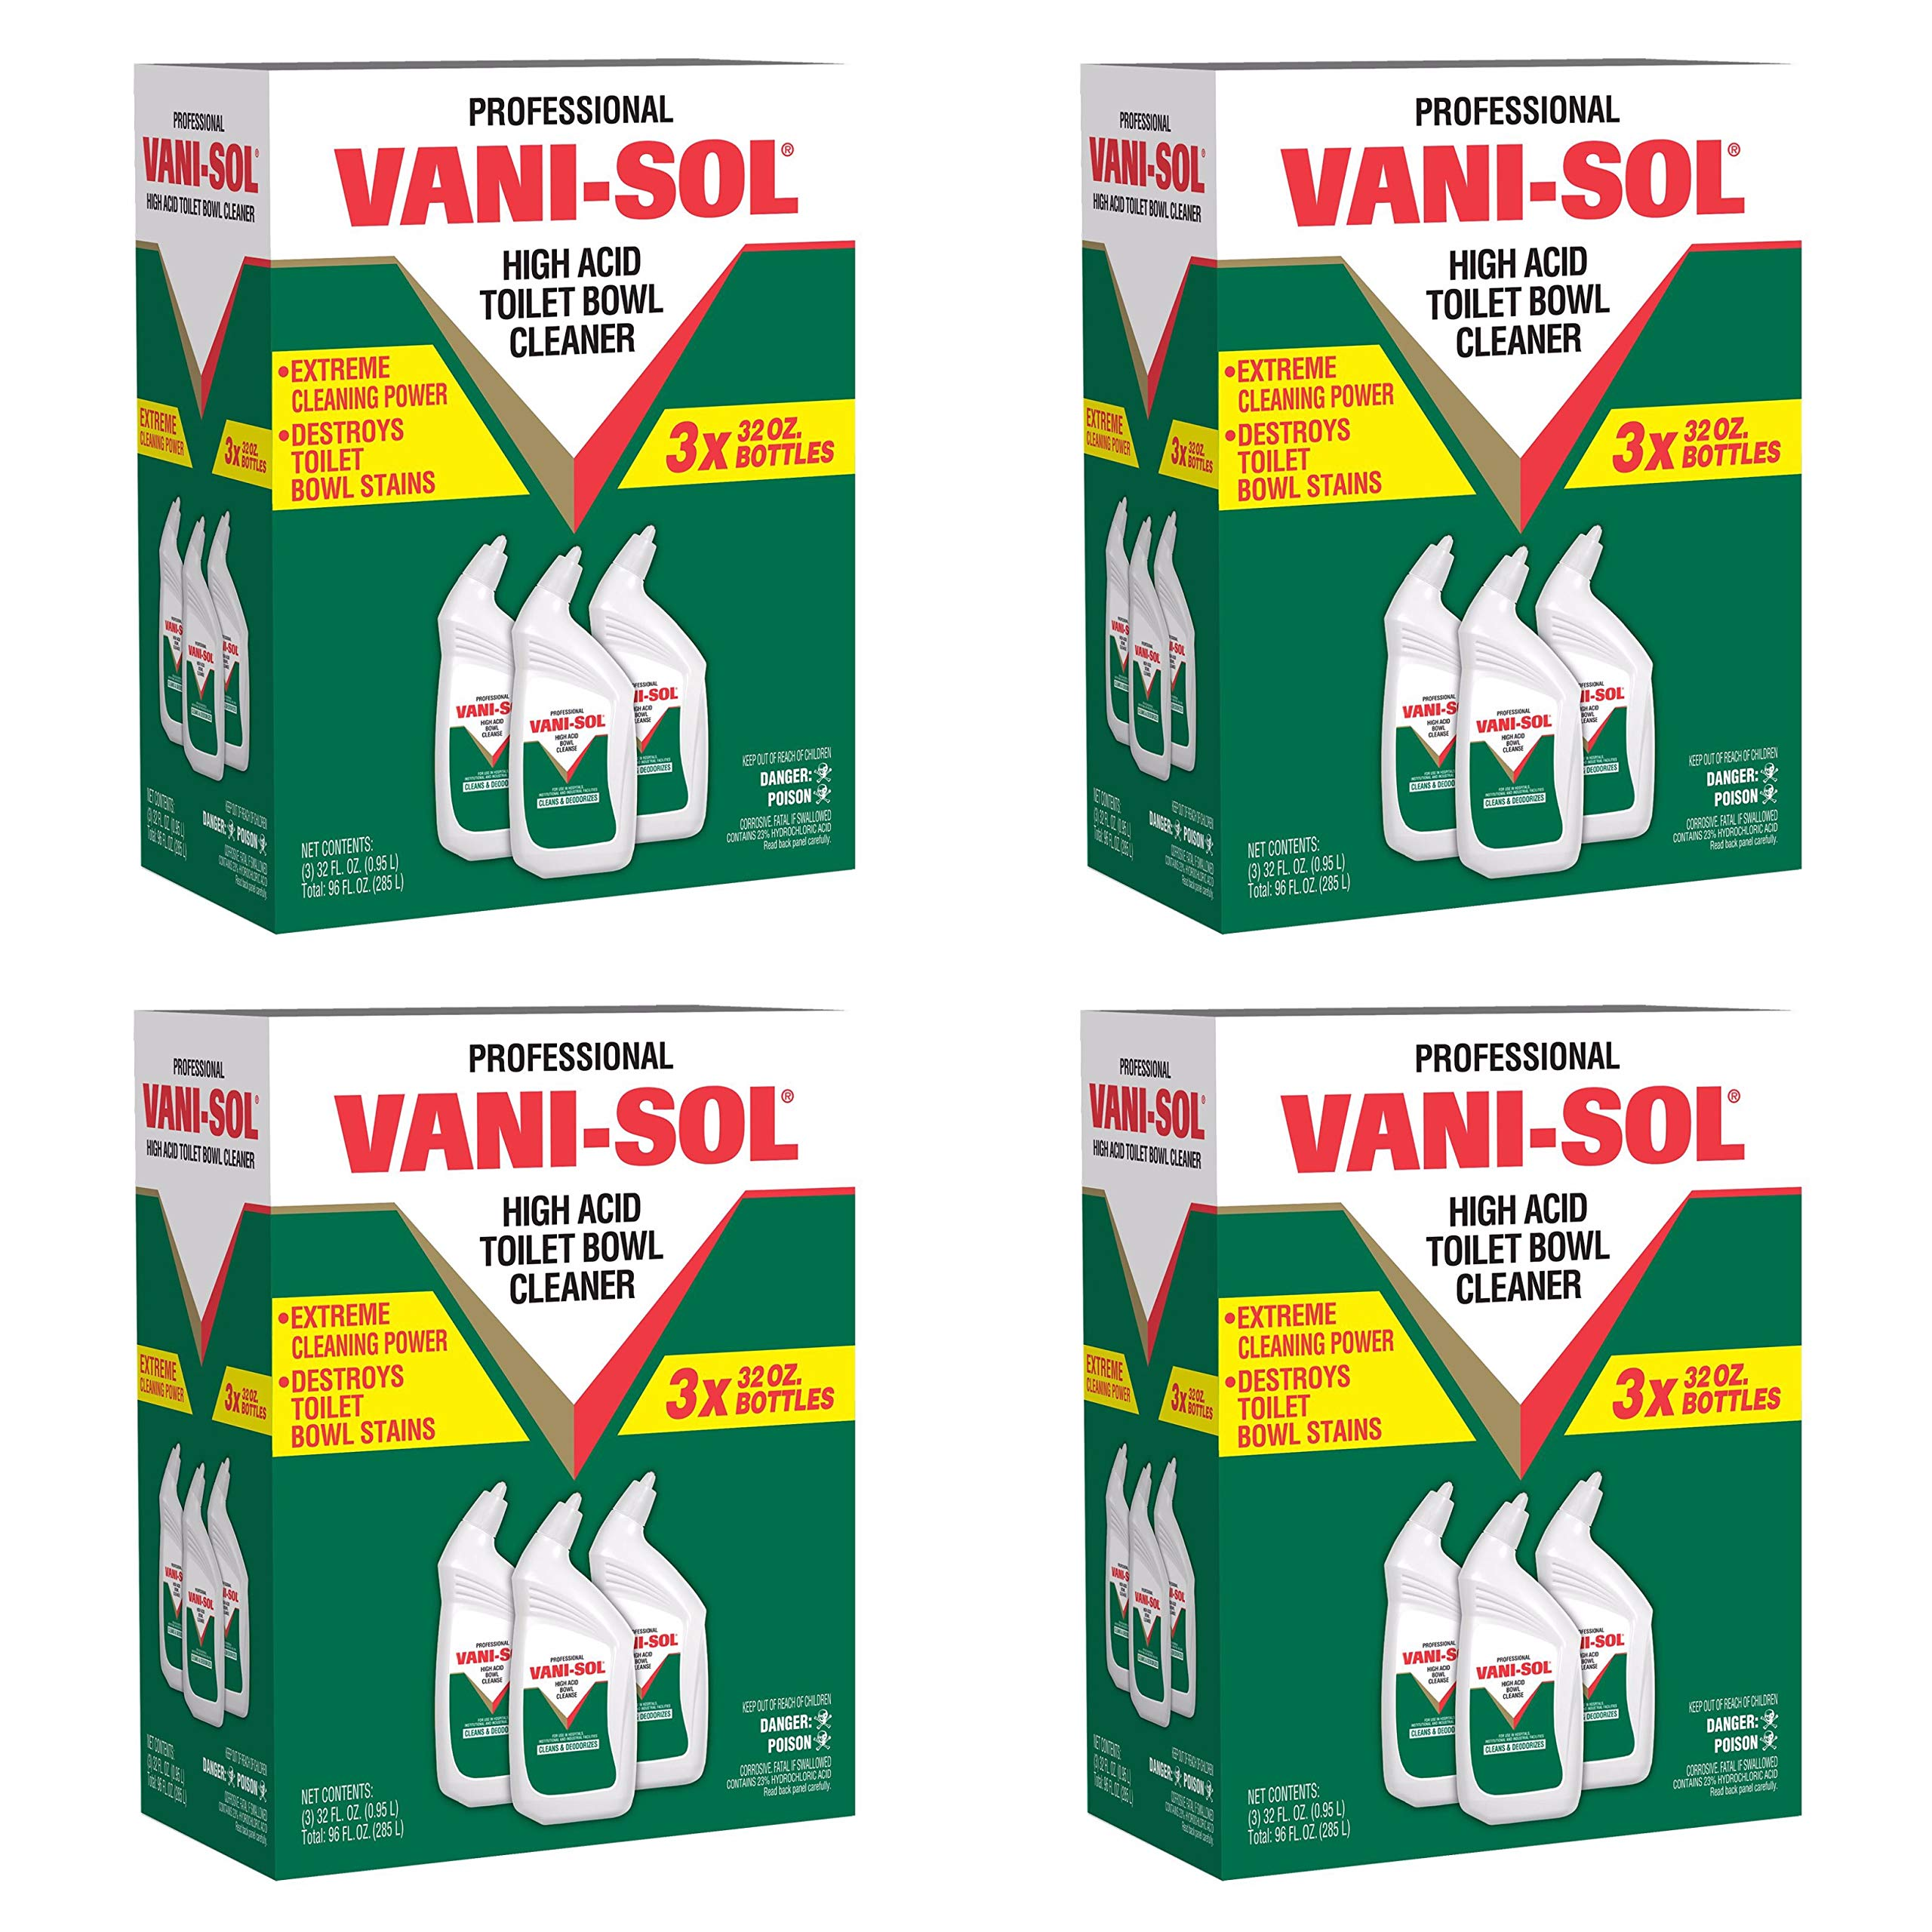 Professional VANI-SOL High Acid Bowl Cleanser, 32 oz Bottles - Includes 12 per case.